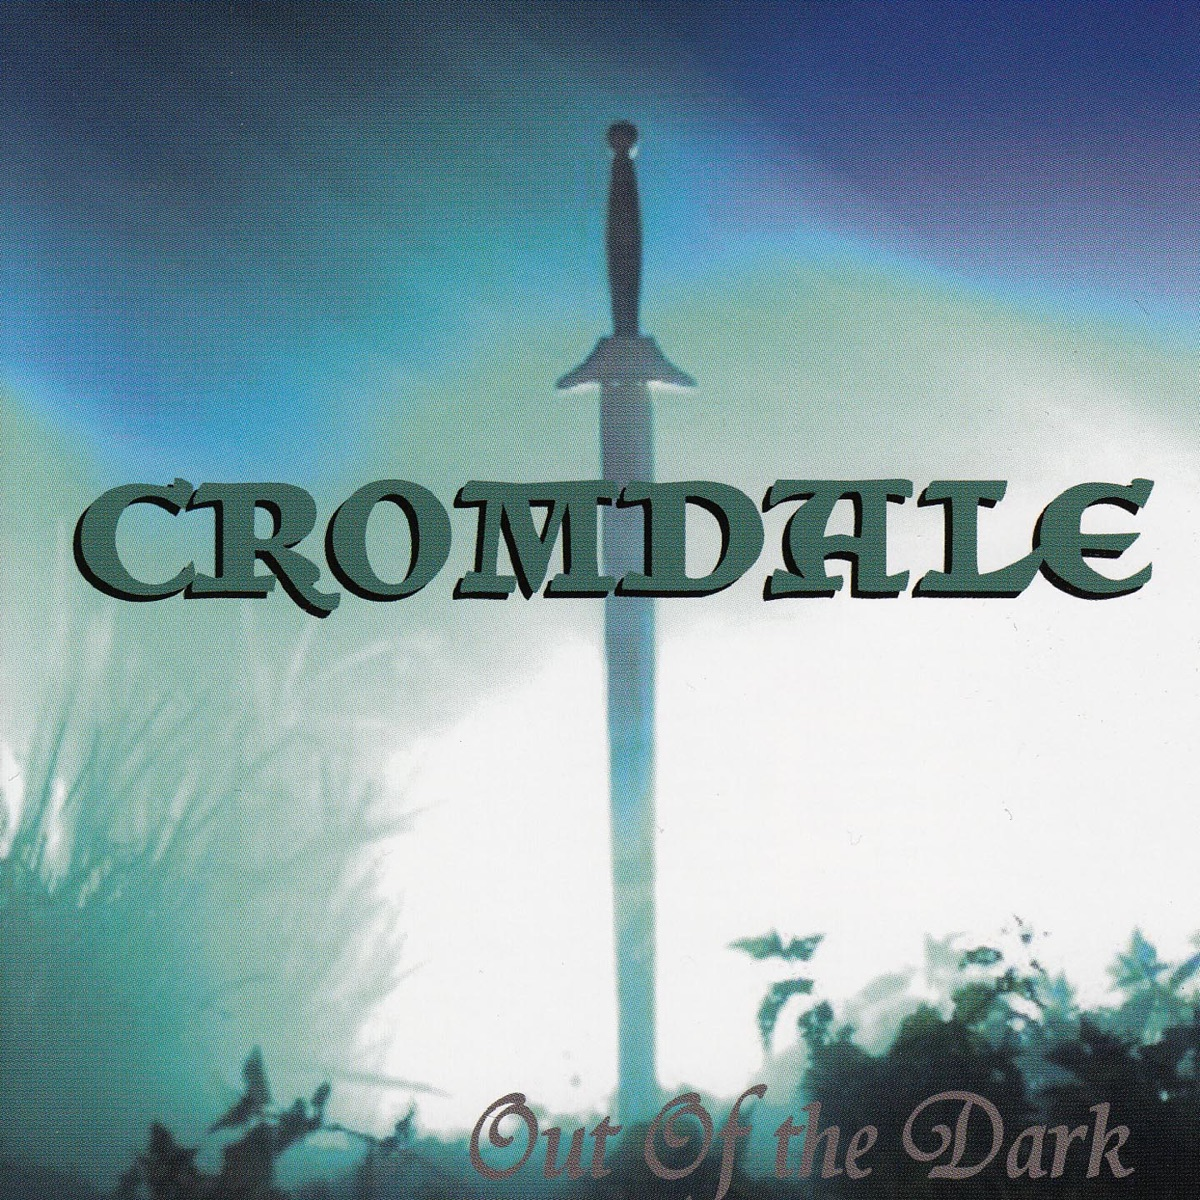 Out of the Dark Cromdale CD cover